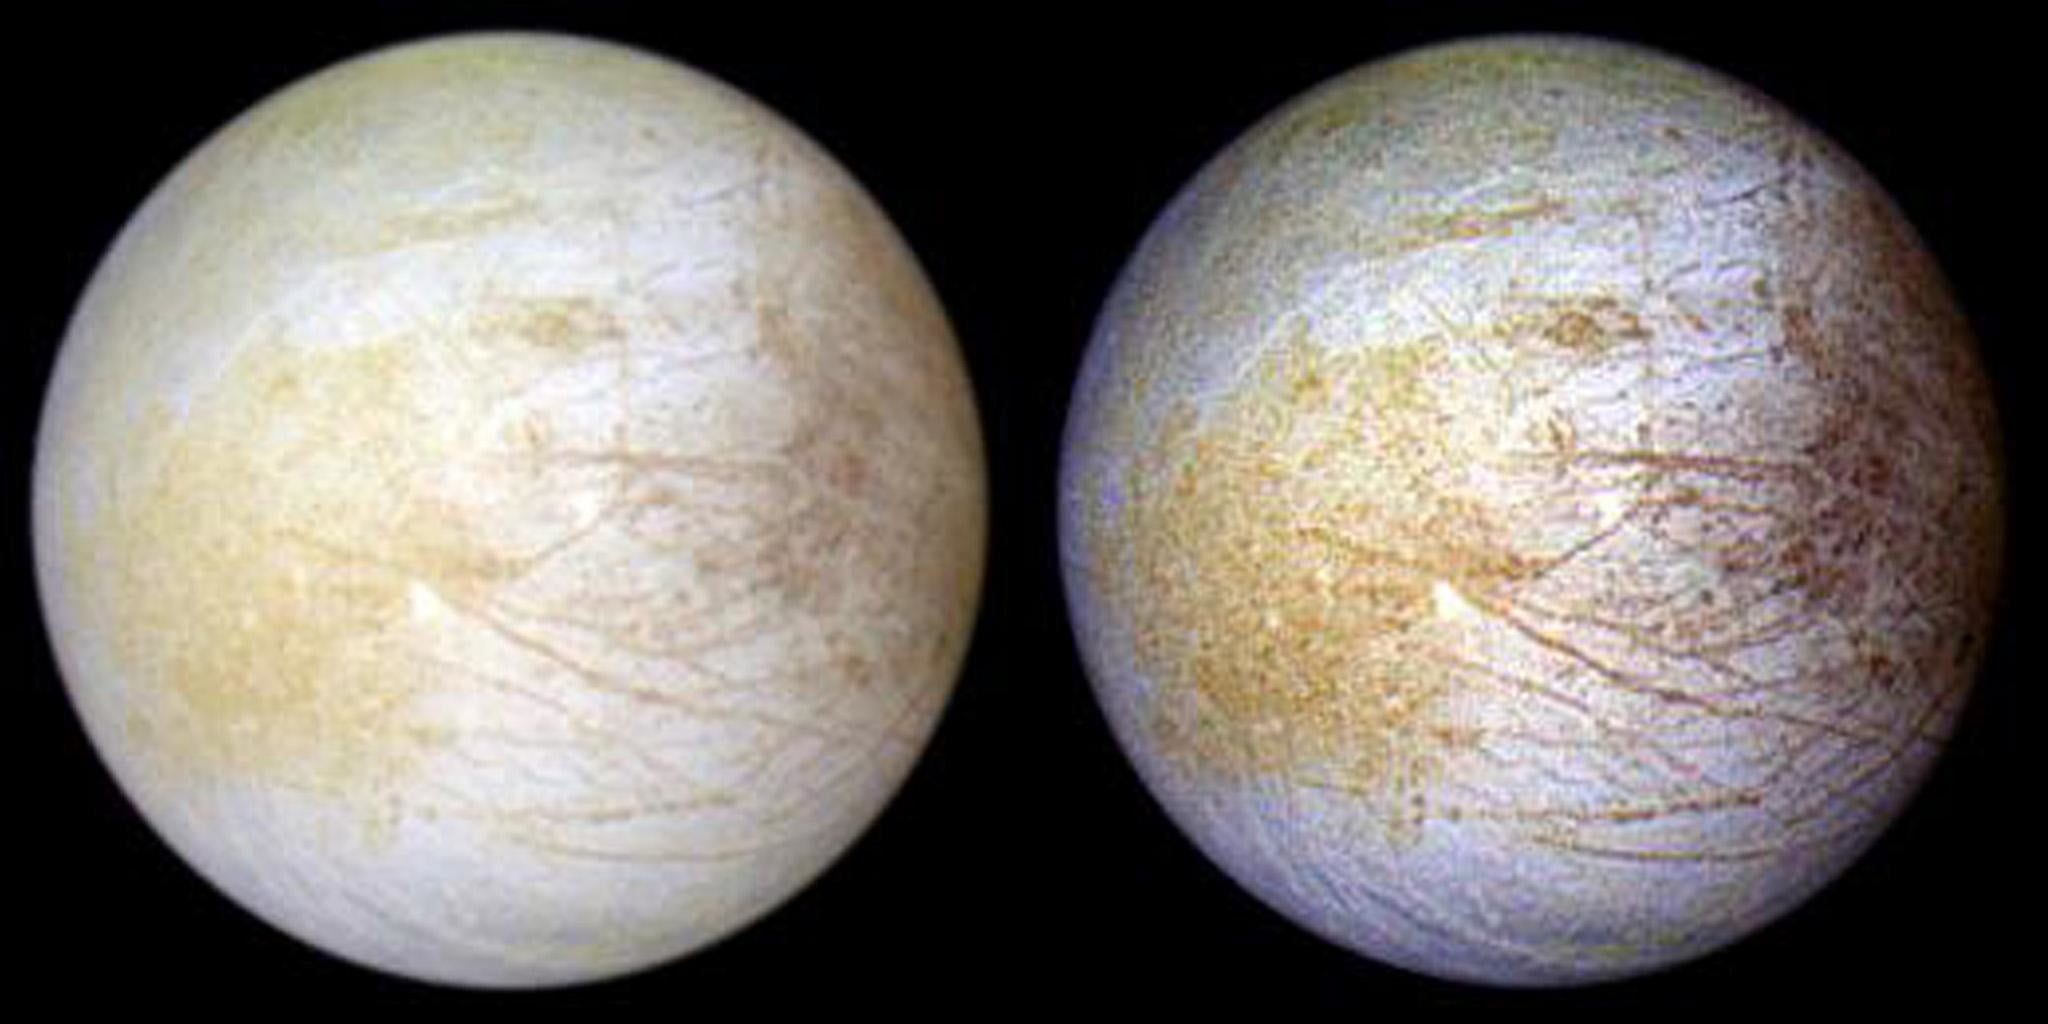 Pass the salt please: table salt found on Jupiter's moon Europa